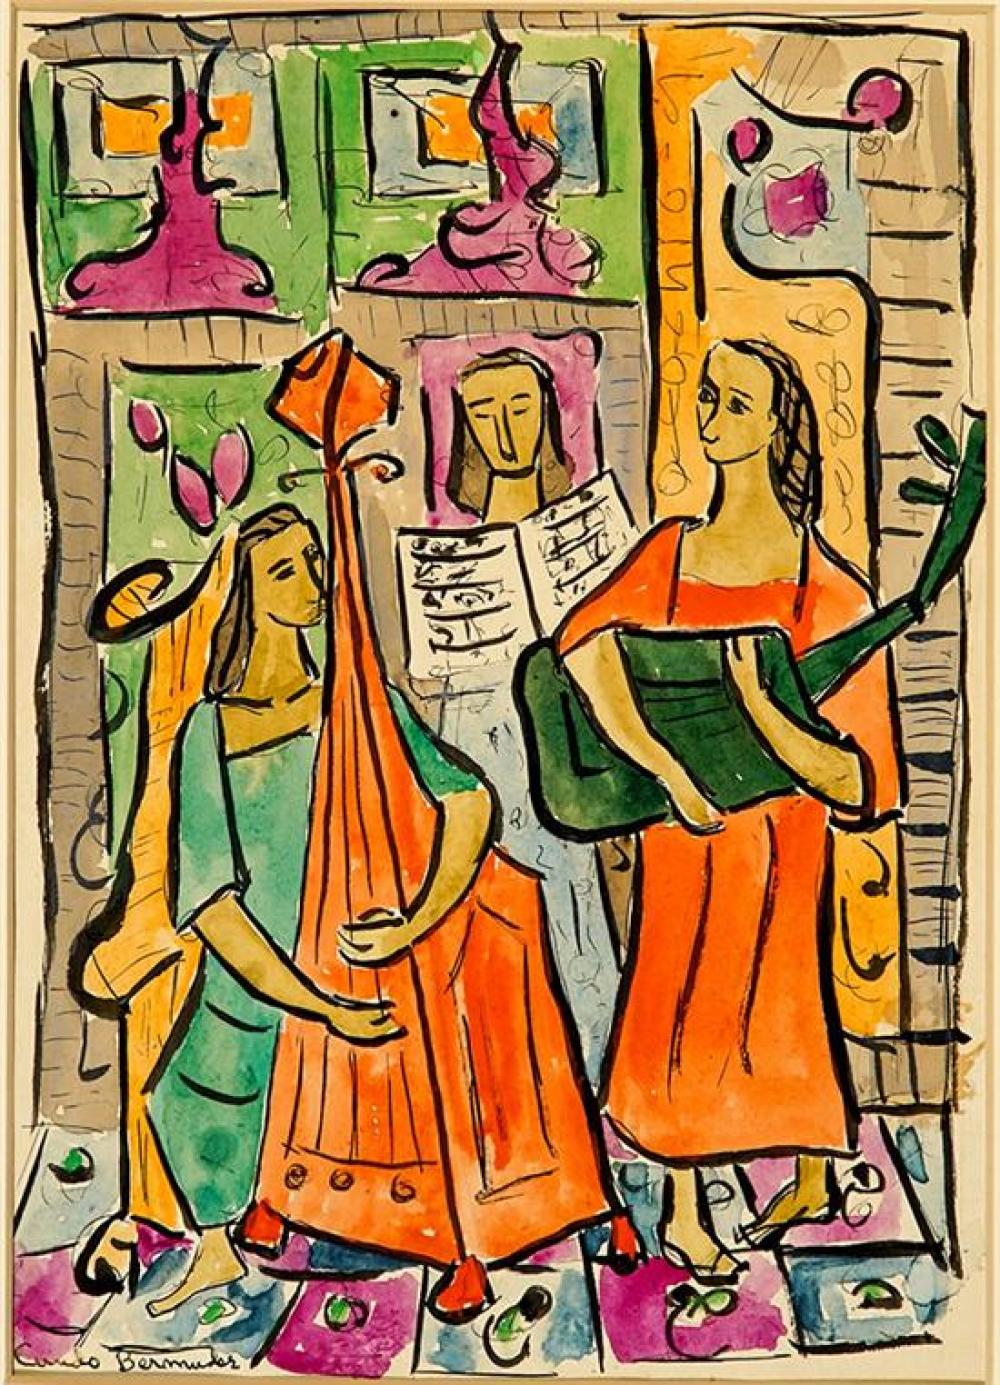 Cundo Bermúdez (Cuban 1914-2008), Musicians, Signed, Watercolor and Ink on Paper, 10-1/4 x 7-1/2 in